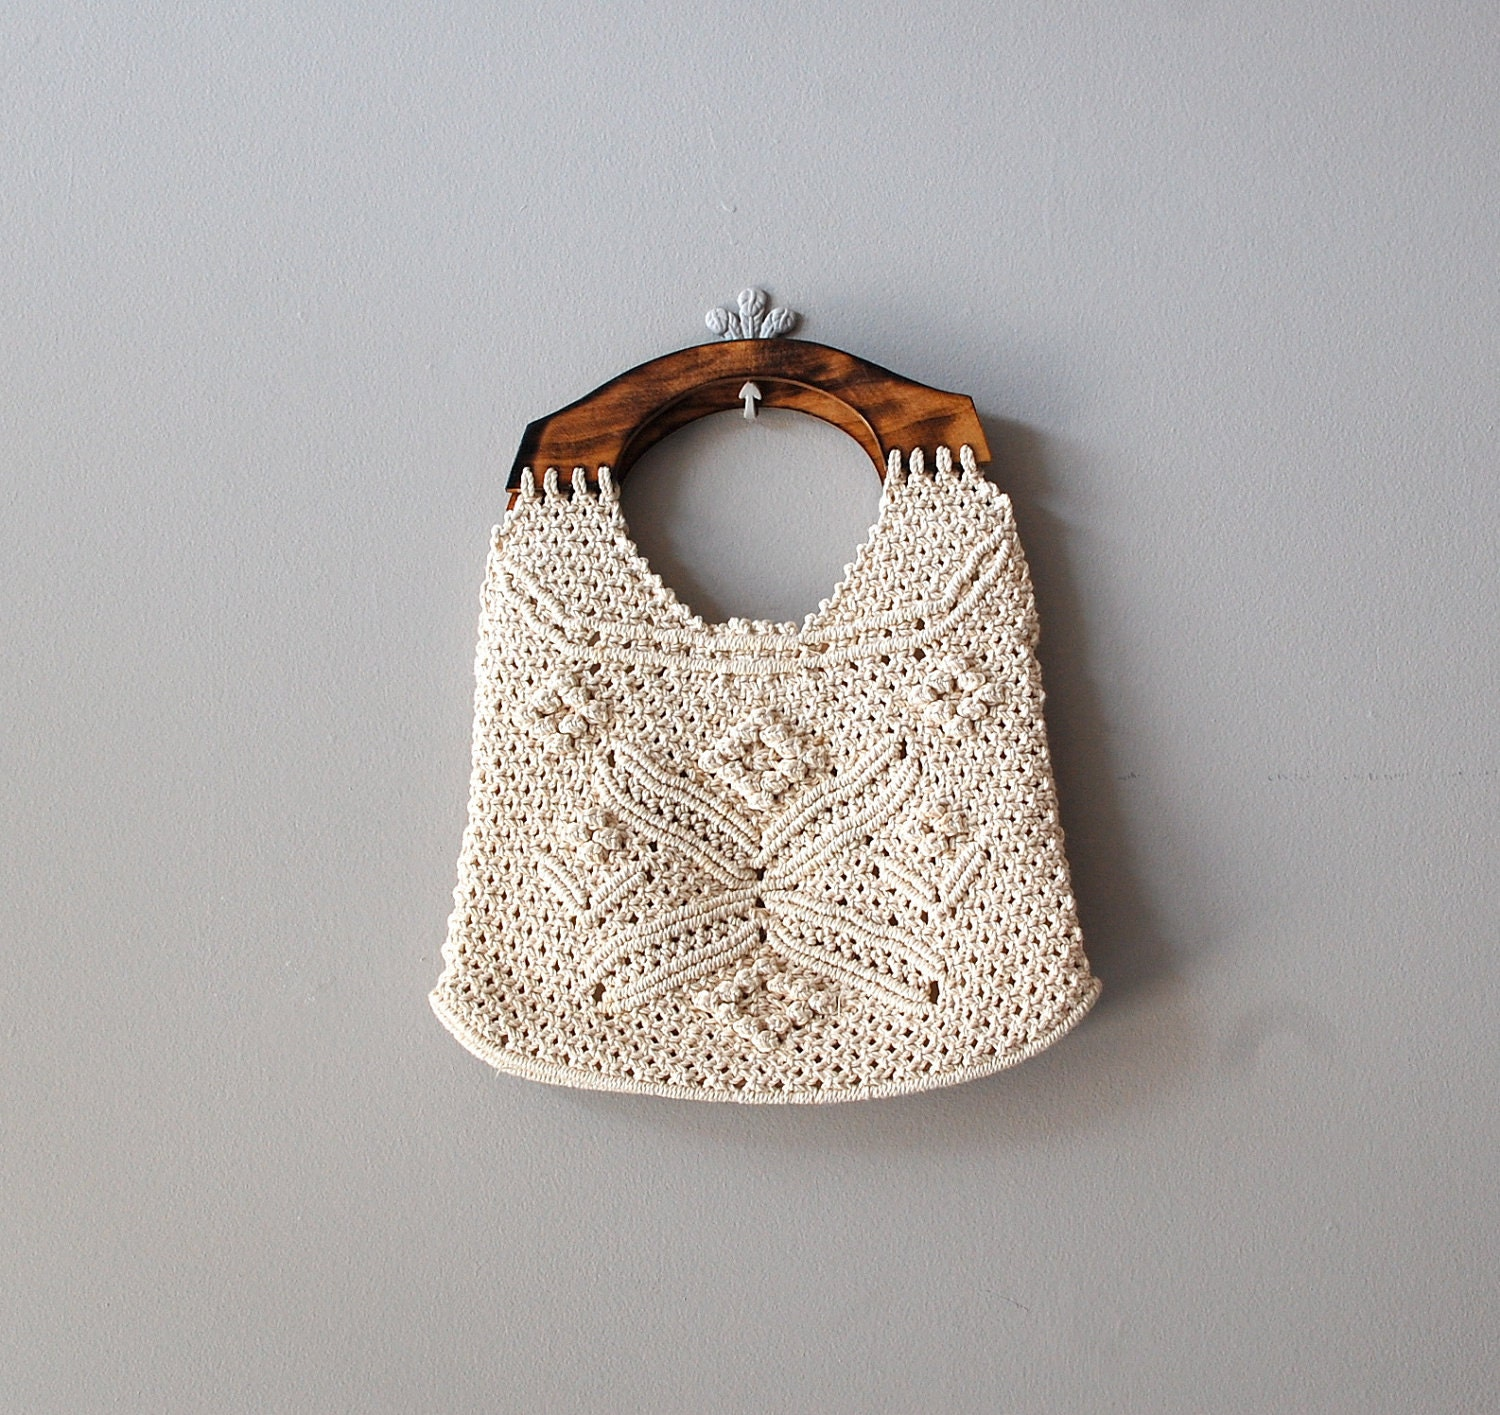 crochet bag / 70s wood handle handbag / Altamira bag by DearGolden